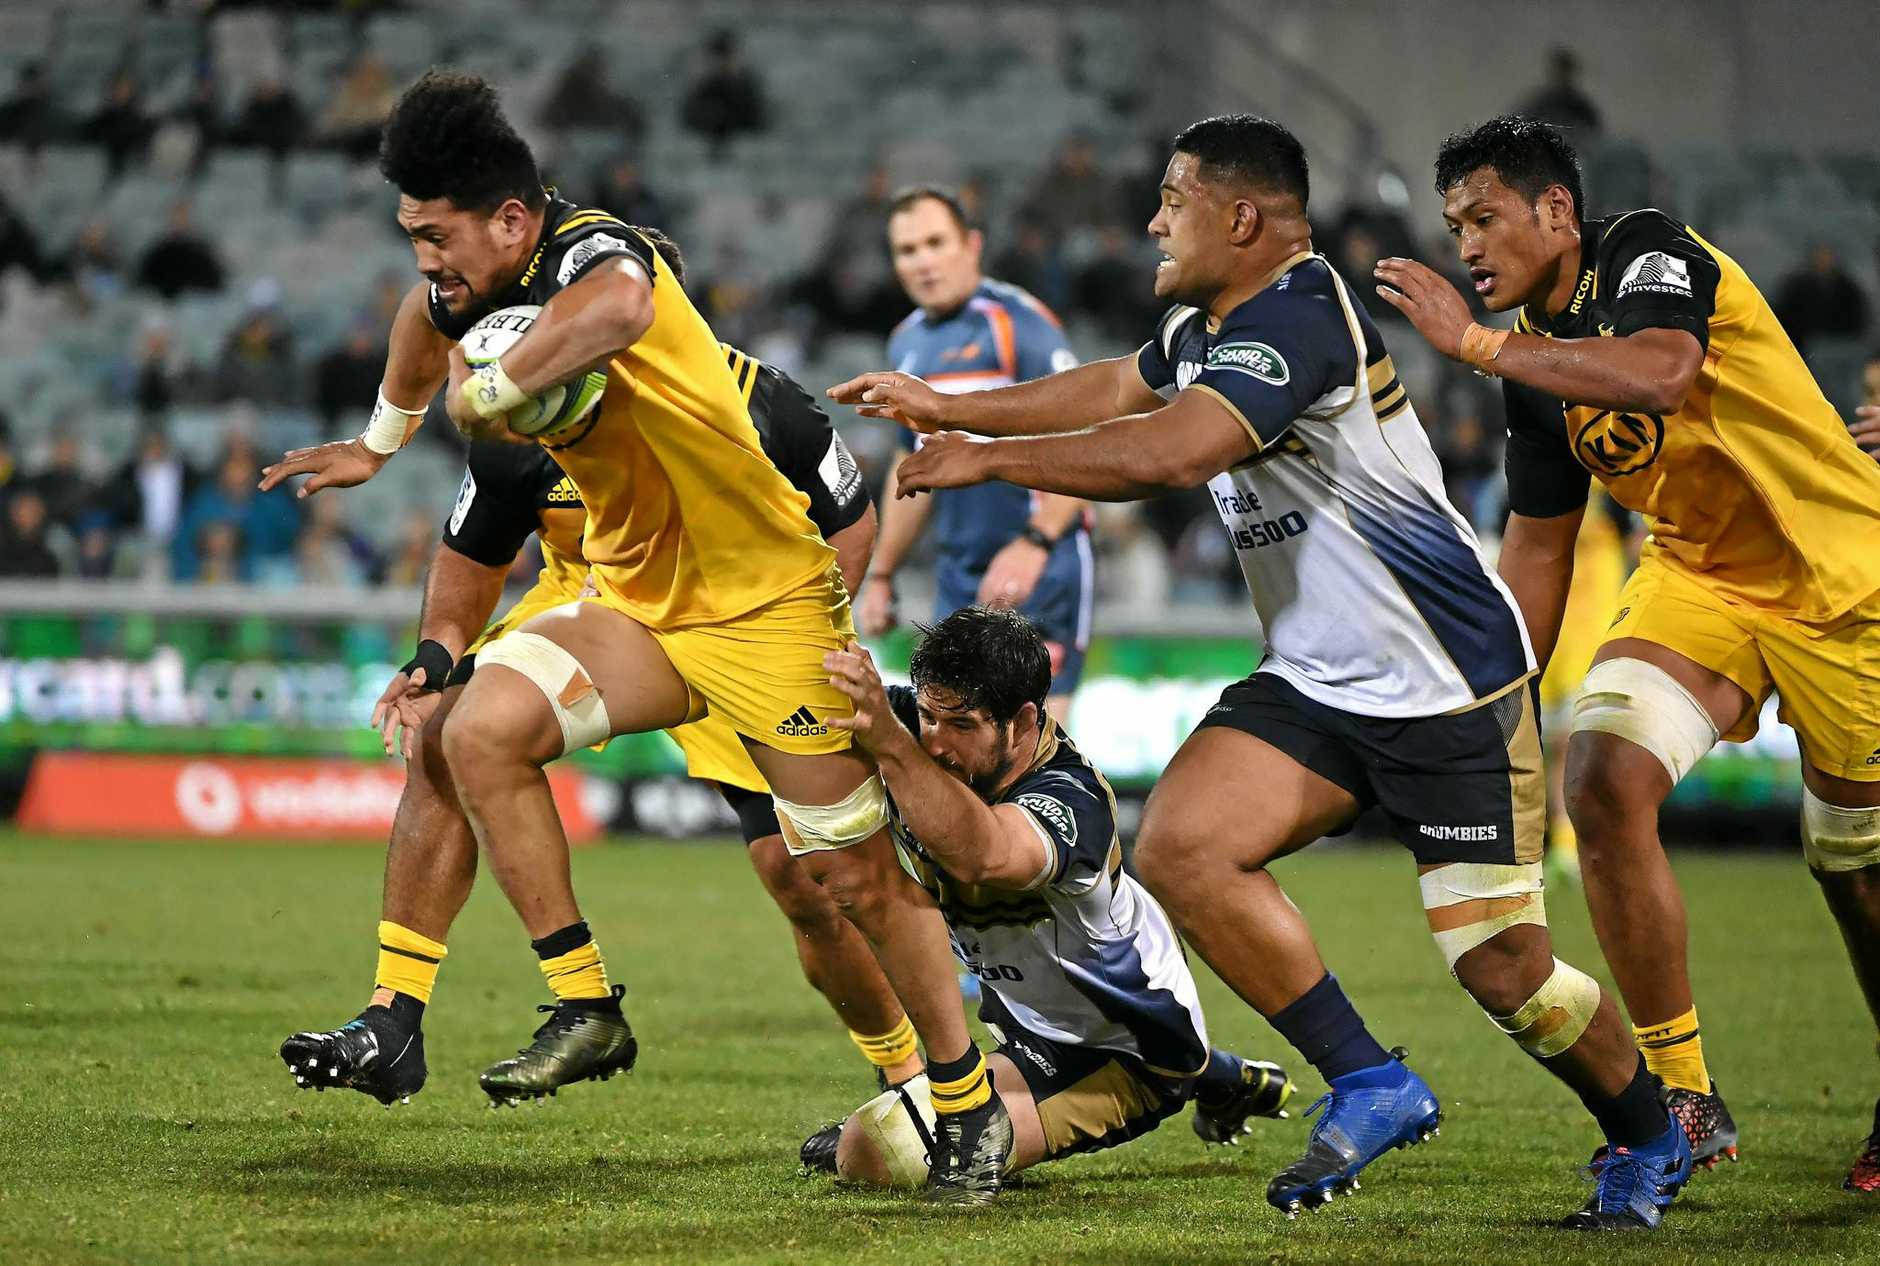 Ardie Savea of the Hurricanes (left) burst through the defensive line in the quarter-final win over the Brumbies.